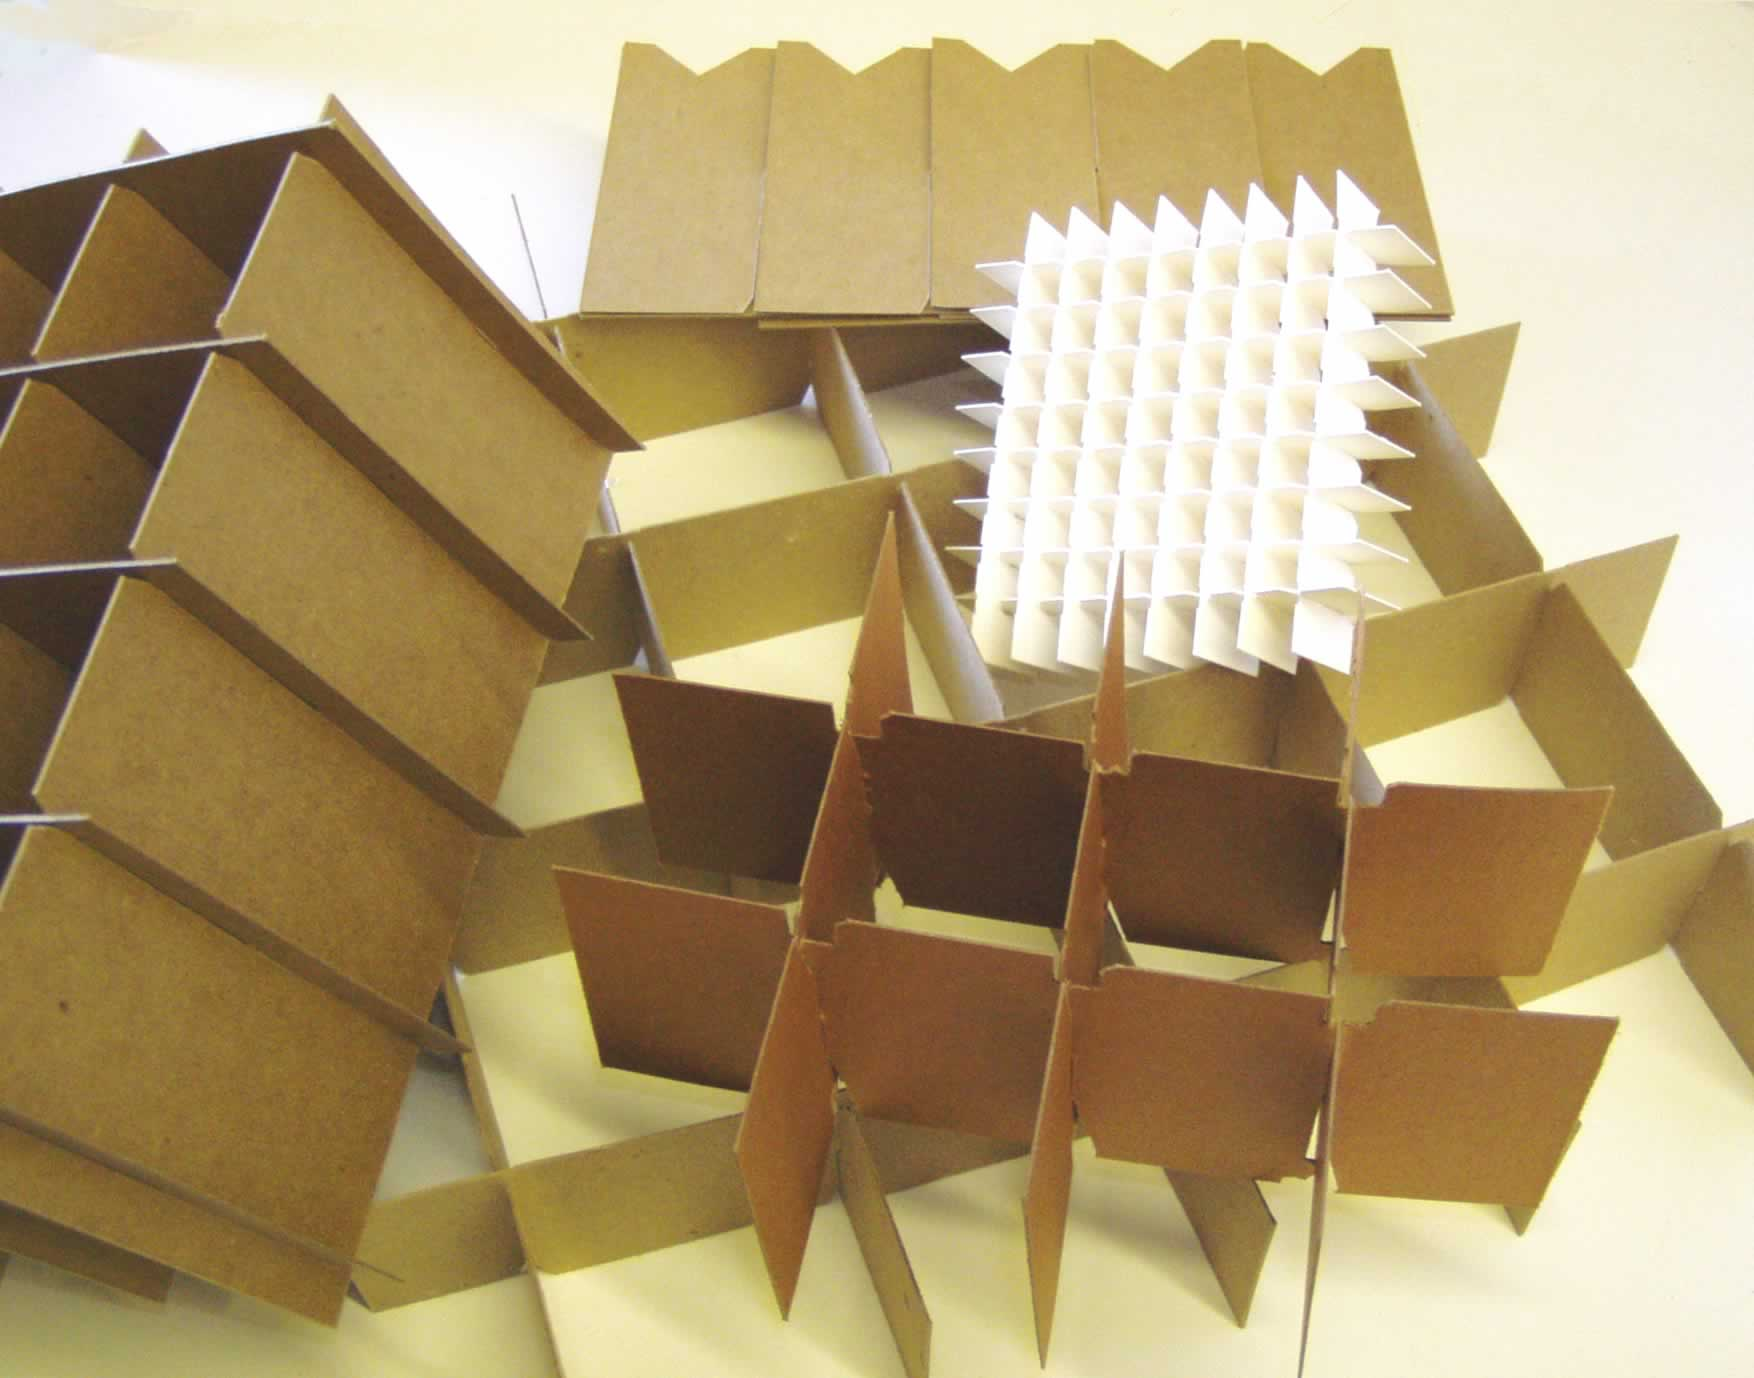 Partition Style Inserts - Pyramid offers quick and economical turnaround on partitions`made from corrugated paper, board or plastic corrugated for any application including a variety of approved abrasion protective laminates for